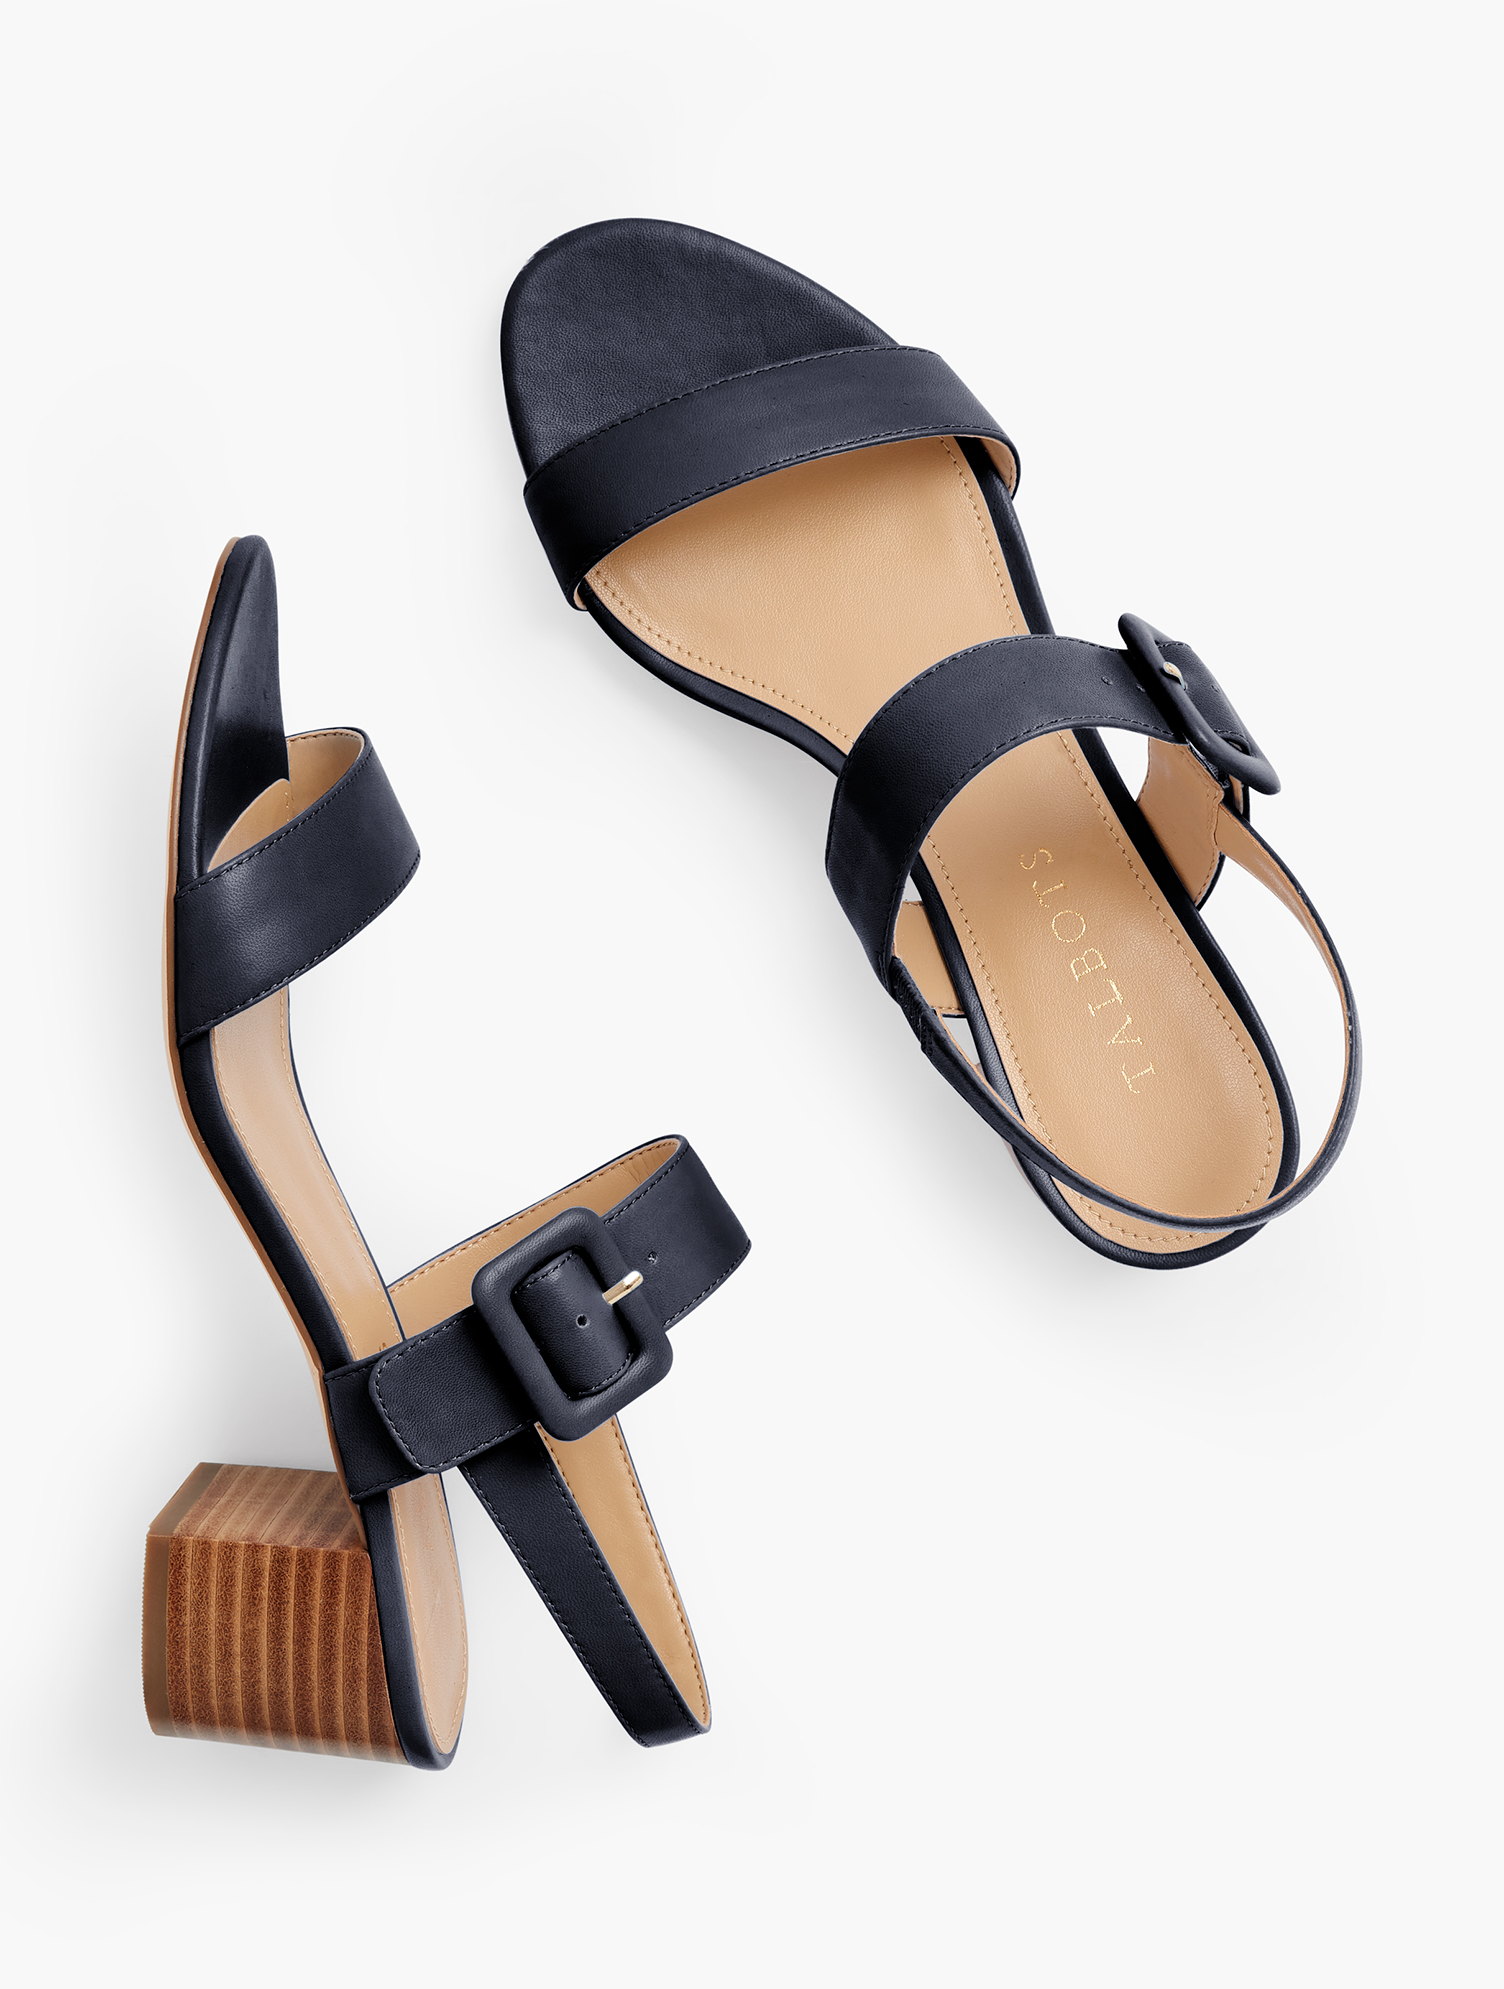 Our chic Mimi block-heel sandals. With fashionable, buckle closure. Crafted from soft Nappa leather for comfort and luxury. Features Gift Box/Gift Wrap is not available for this item 2 inches heel Flexible Non Skid Sole 3Mm Memory Foam Footbed Imported Material: 100% Leather Mimi Leather Block Heel Sandals - Indigo - 5M Talbots